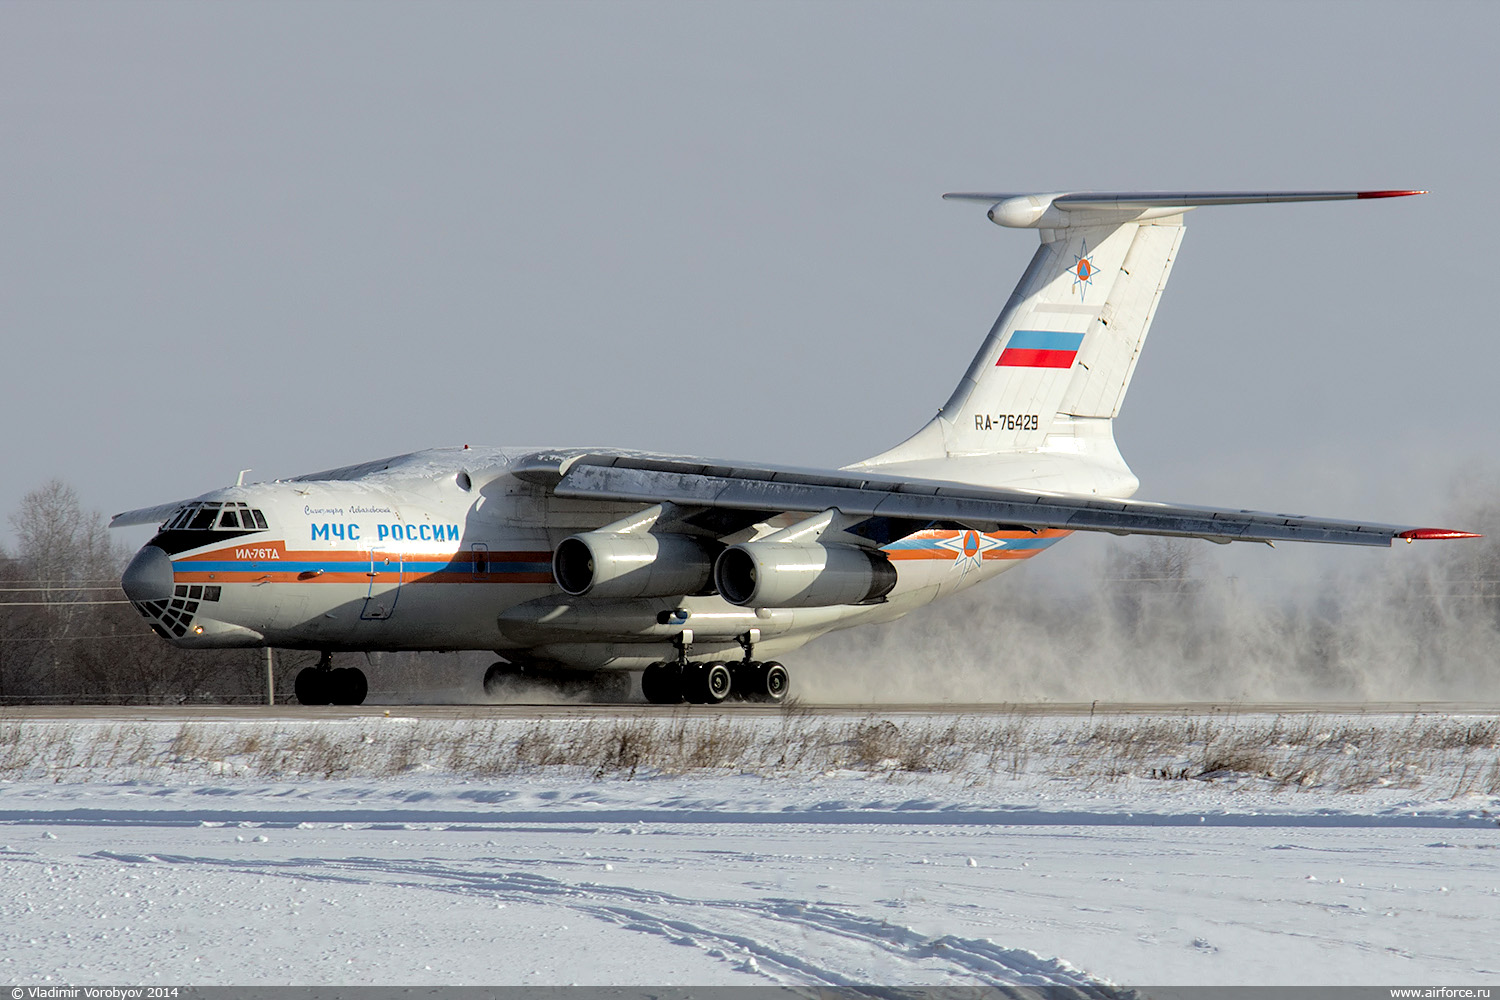 http://www.airforce.ru/content/attachments/59922-v_vorobyov_il-76td_mchs_1500.jpg